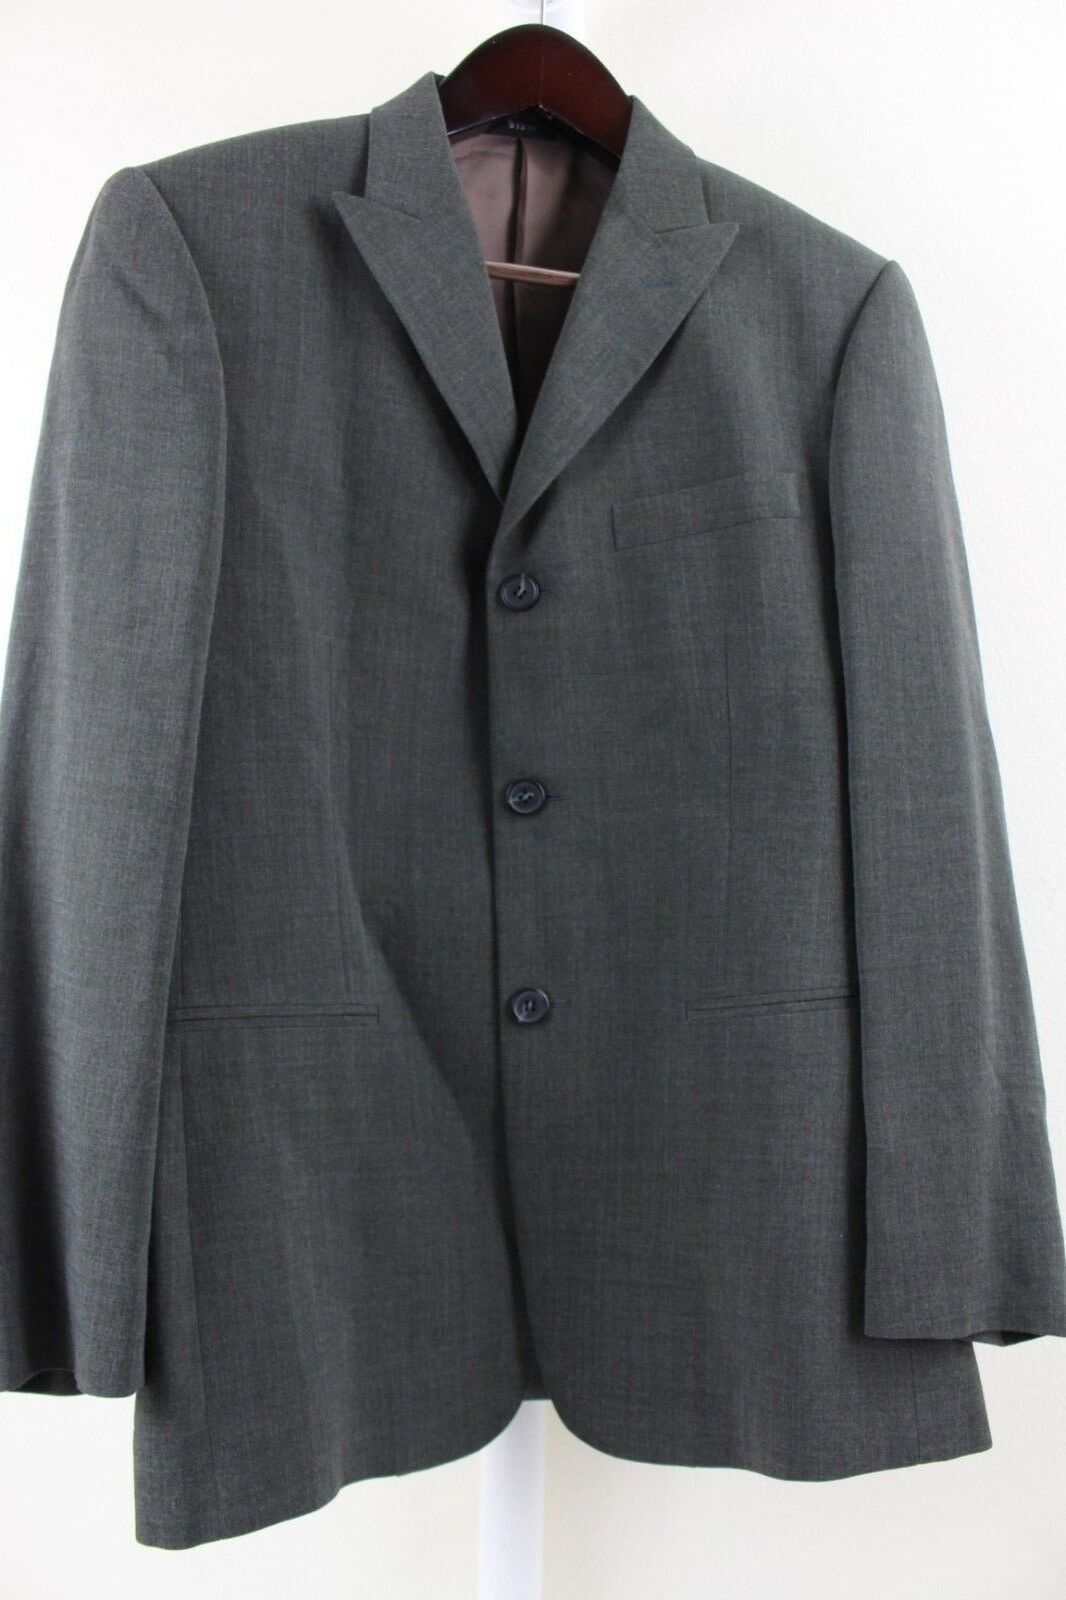 BIEM Rayon & Polyester Blend grau W/ Blau Highlights 3 Button Lined Blazer - 38R